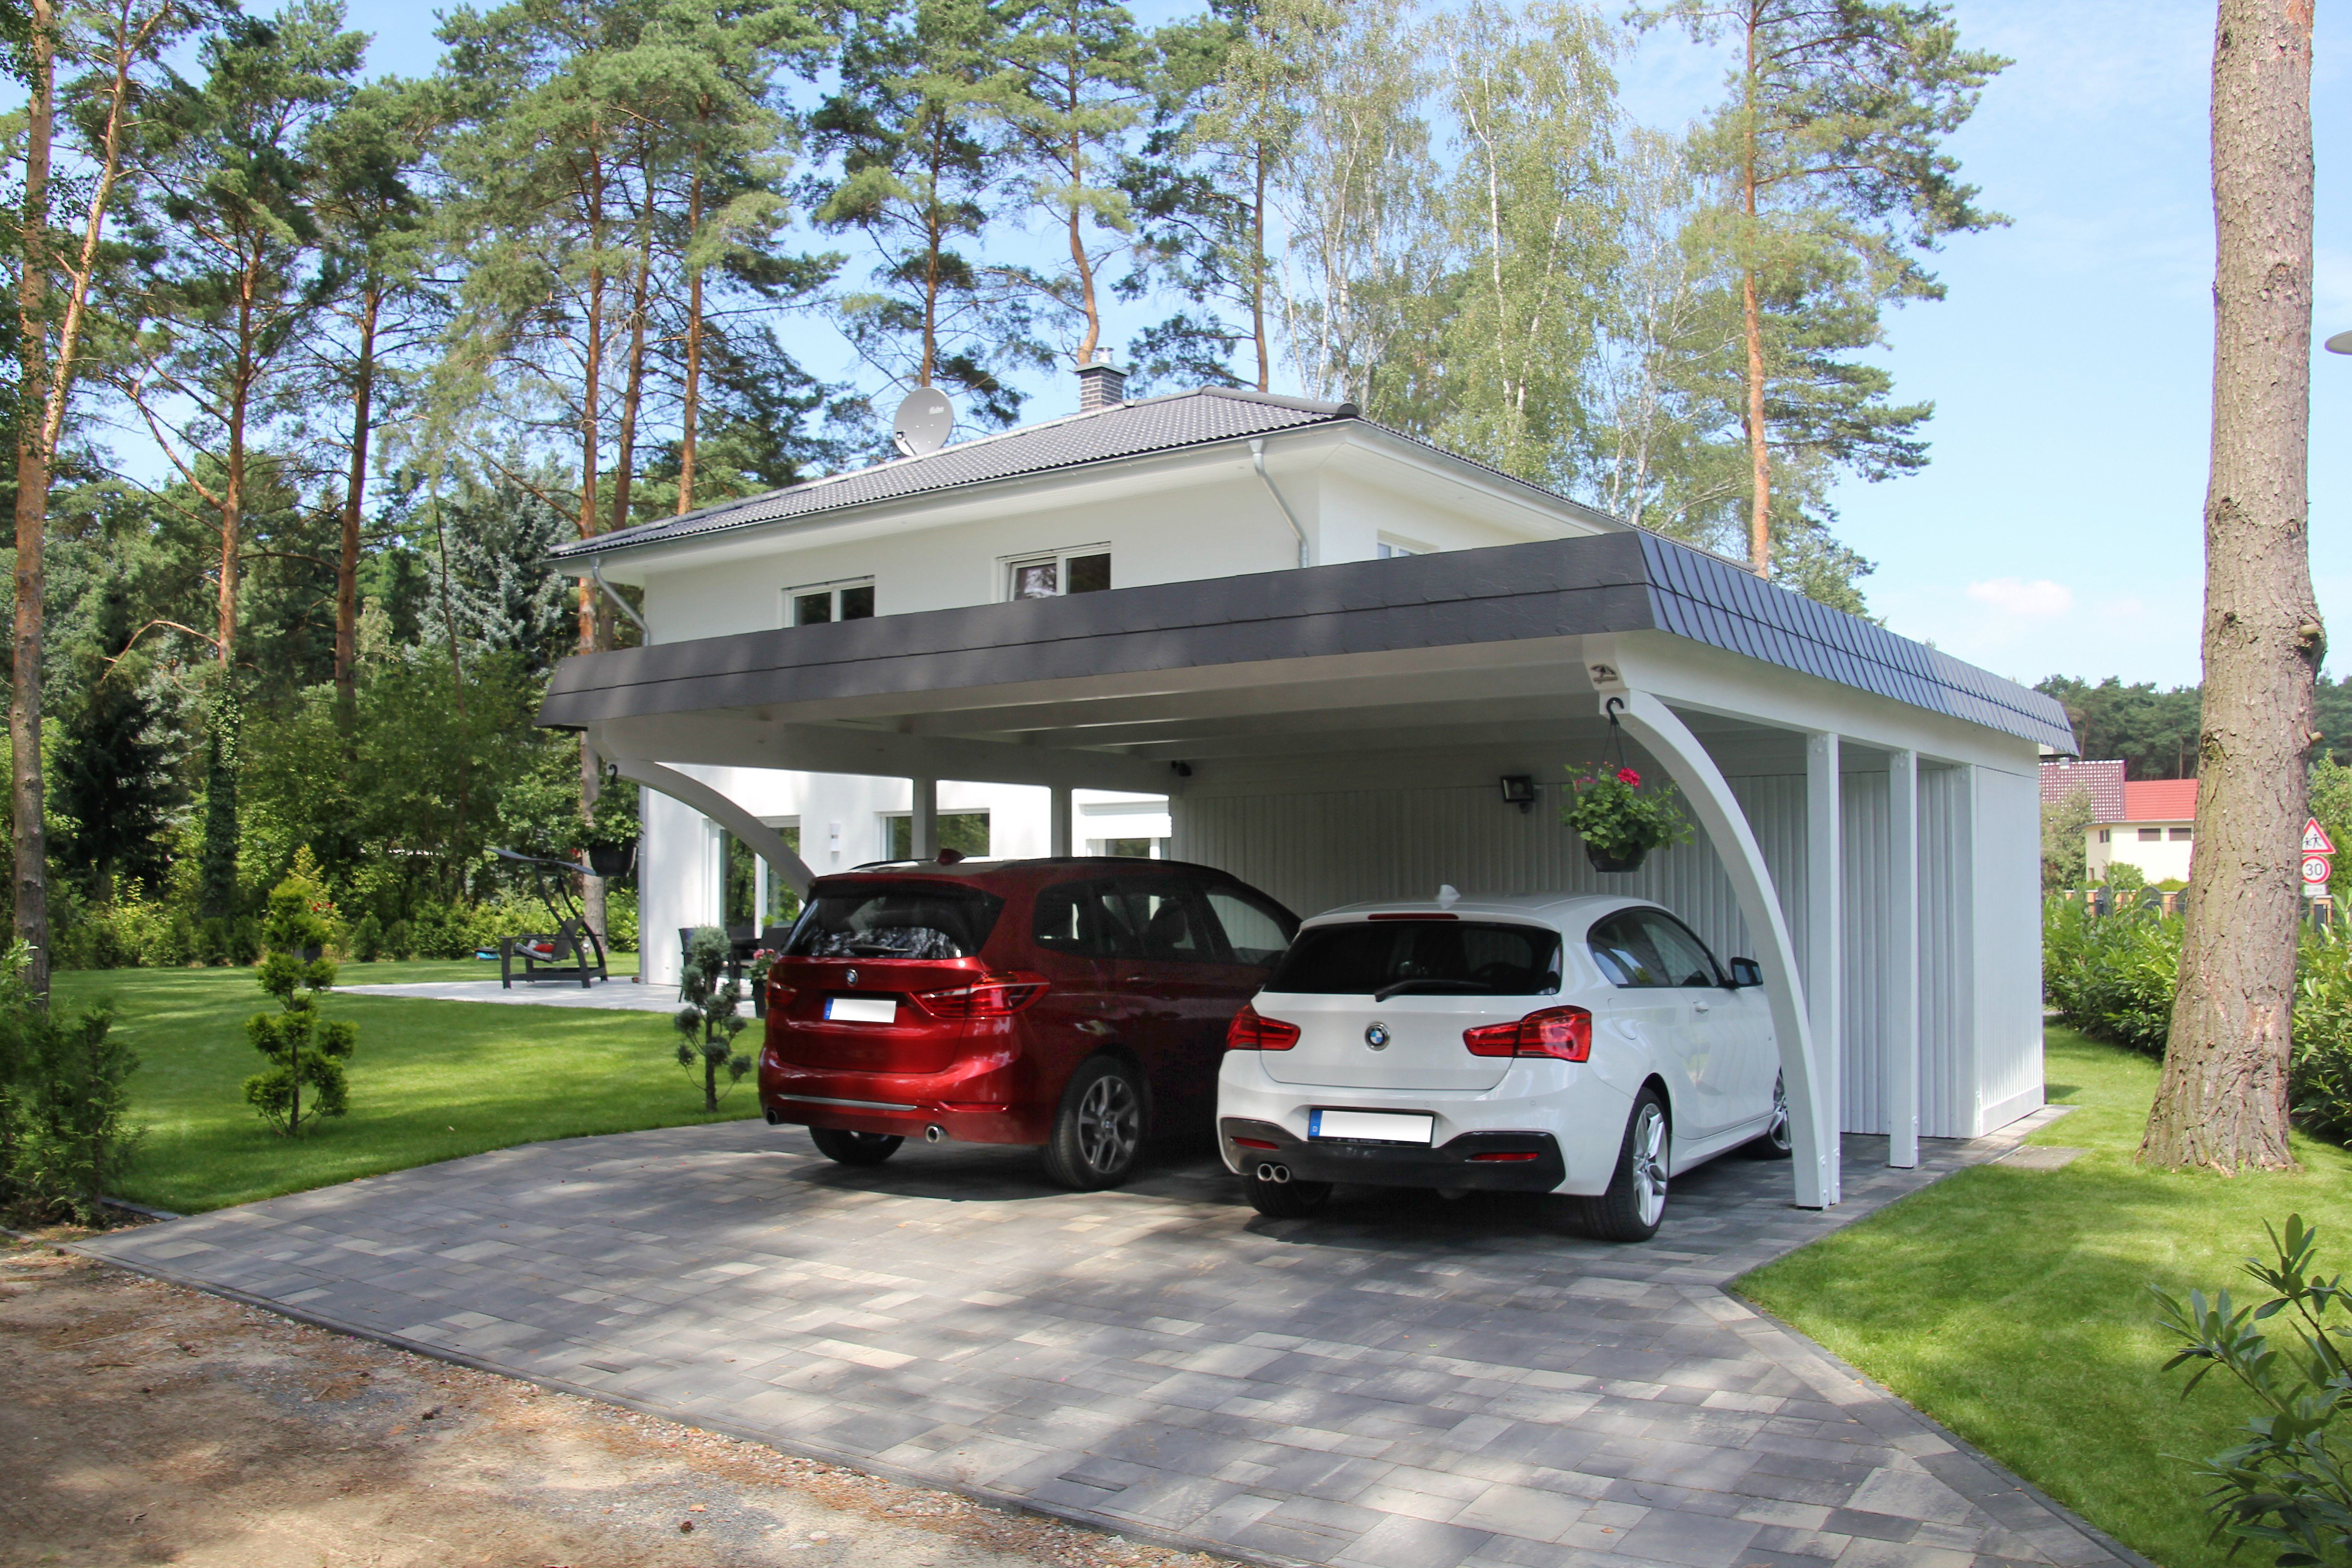 carport f r 2 autos mit ger teraum und rundb gen im. Black Bedroom Furniture Sets. Home Design Ideas